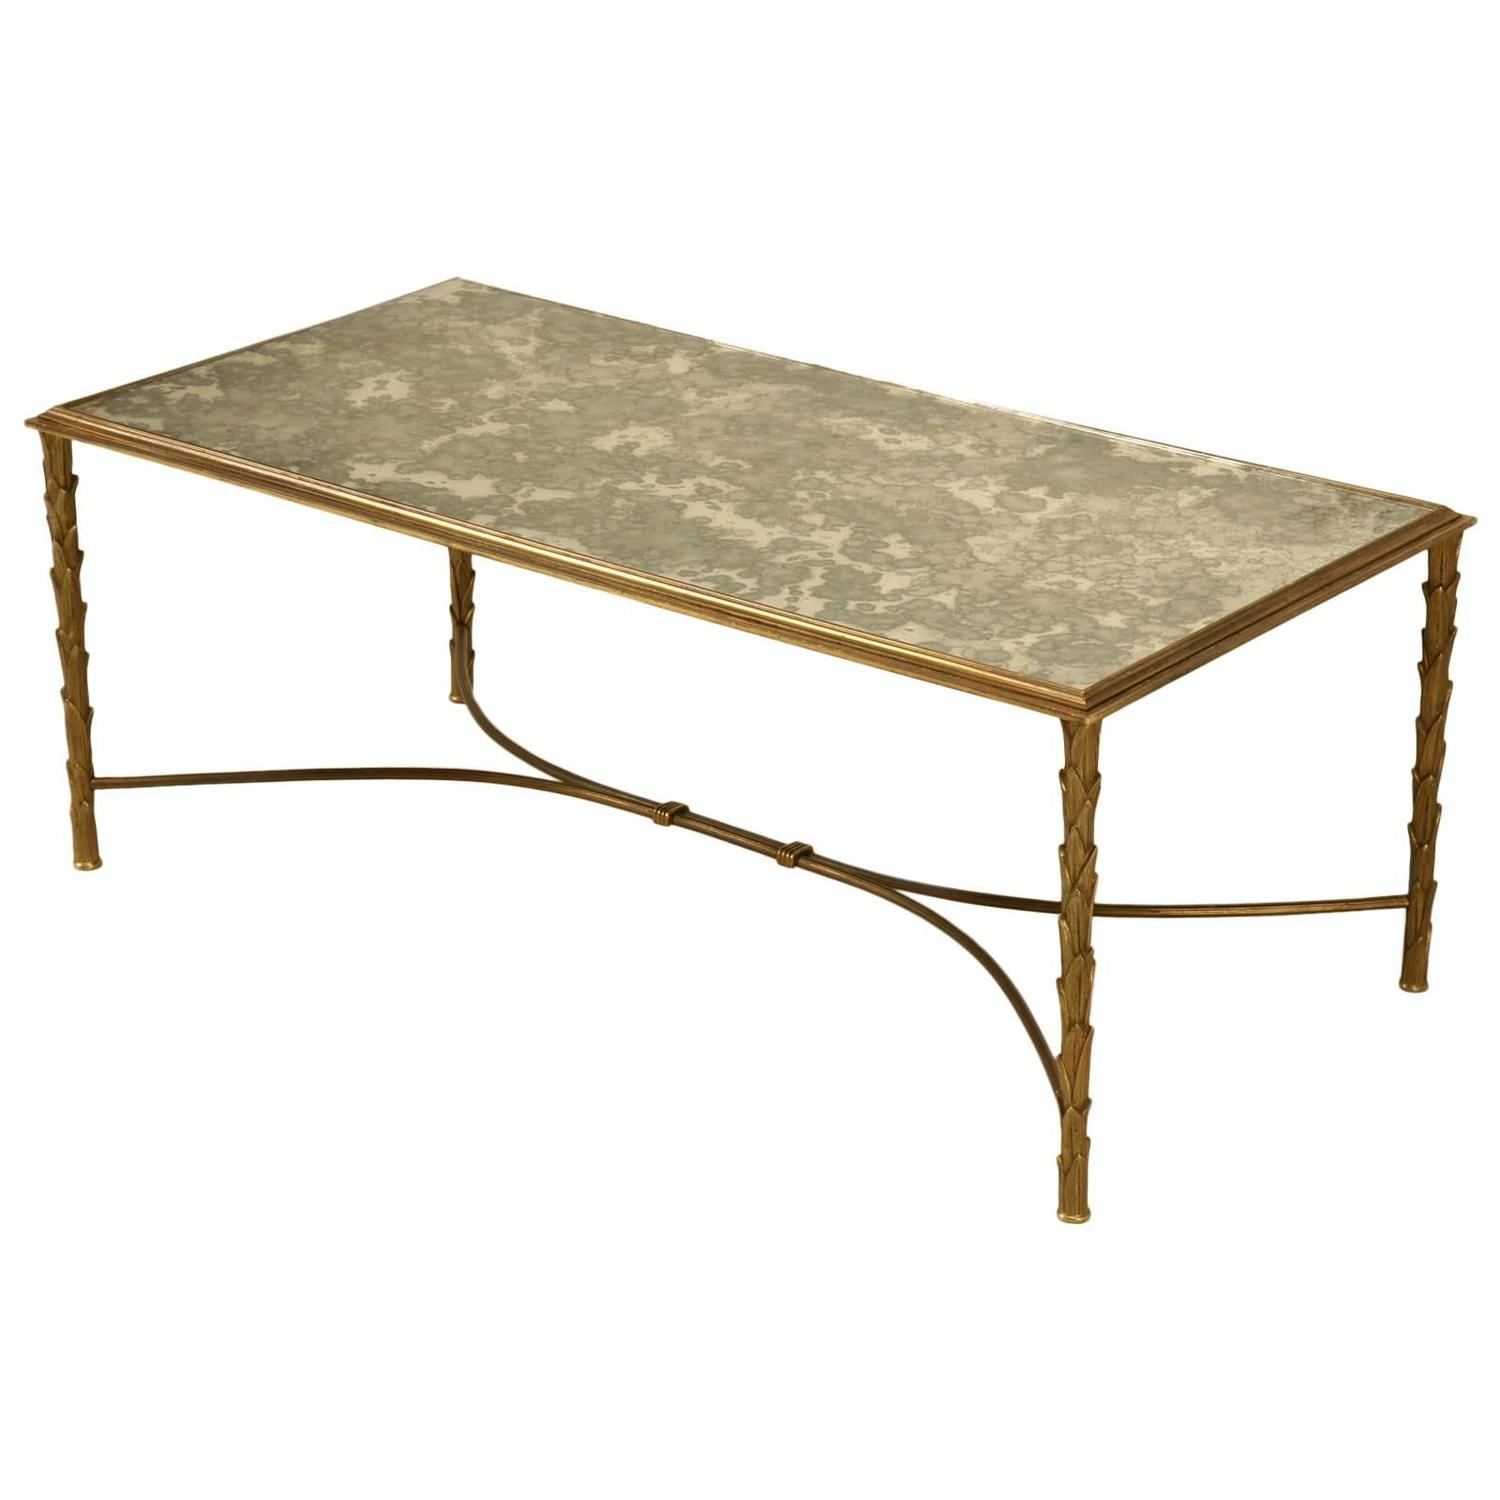 Bronze Coffee Table Attributed To Masion Bagues At 1stdibs: bronze coffee tables